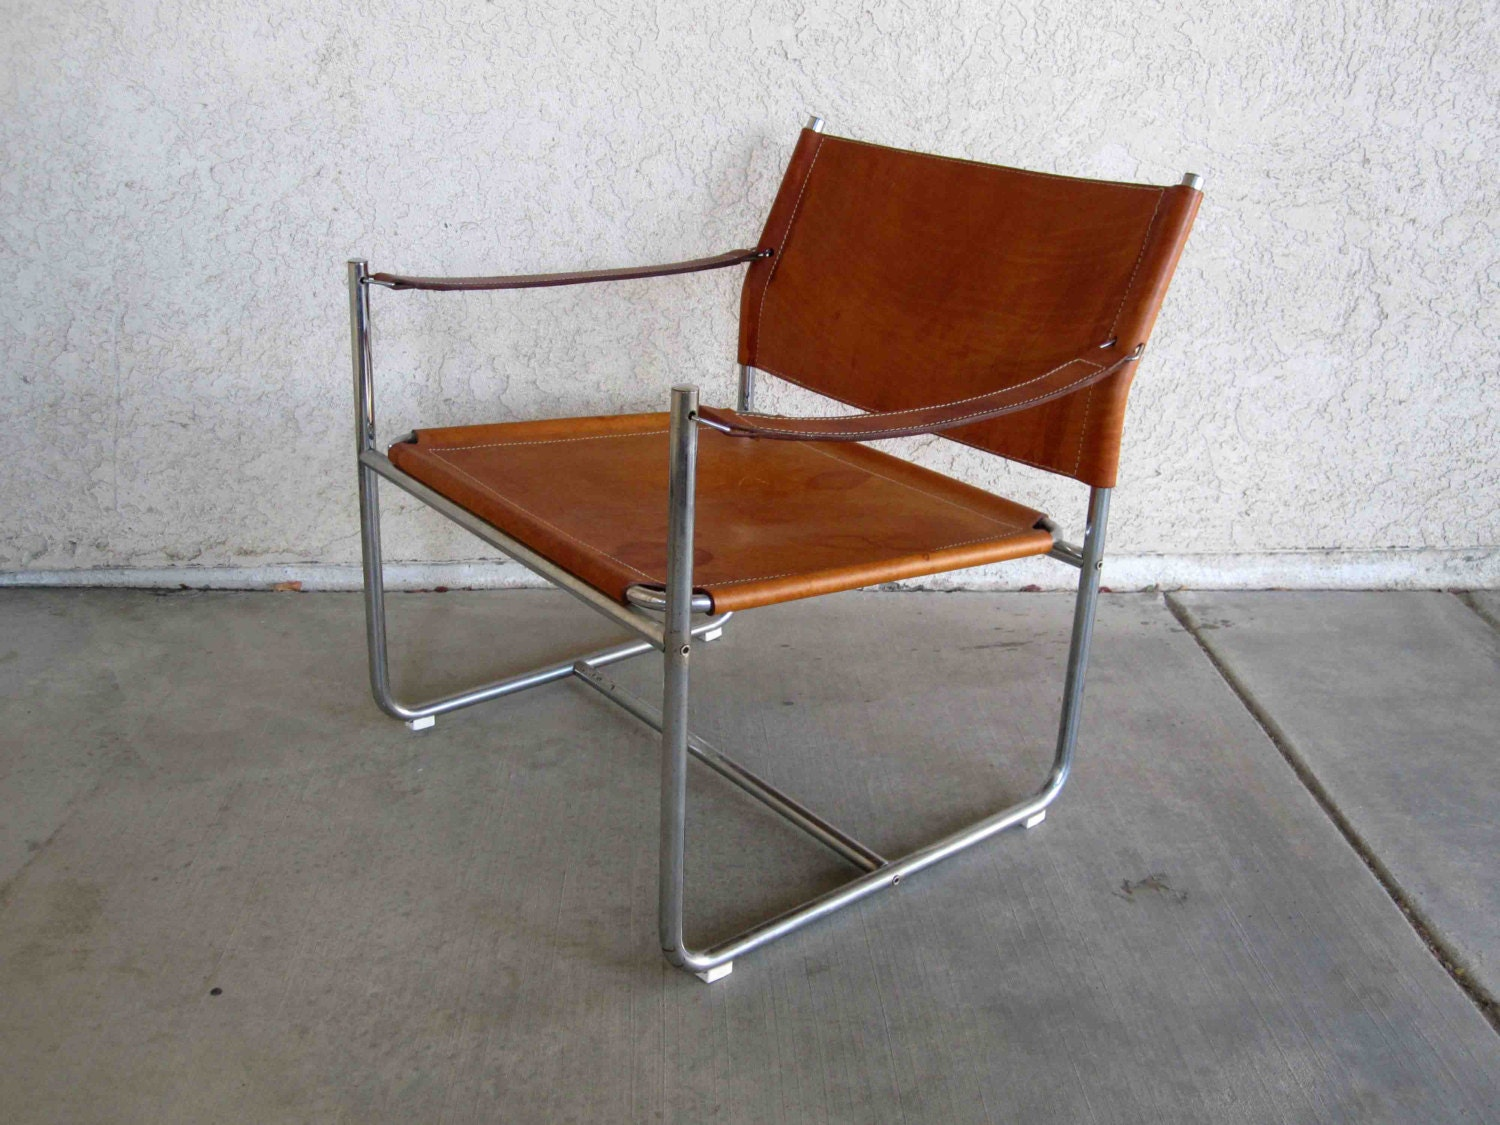 Canvas Sling Chair Vintage Mid Century Sling Chair In Leather And Chrome By